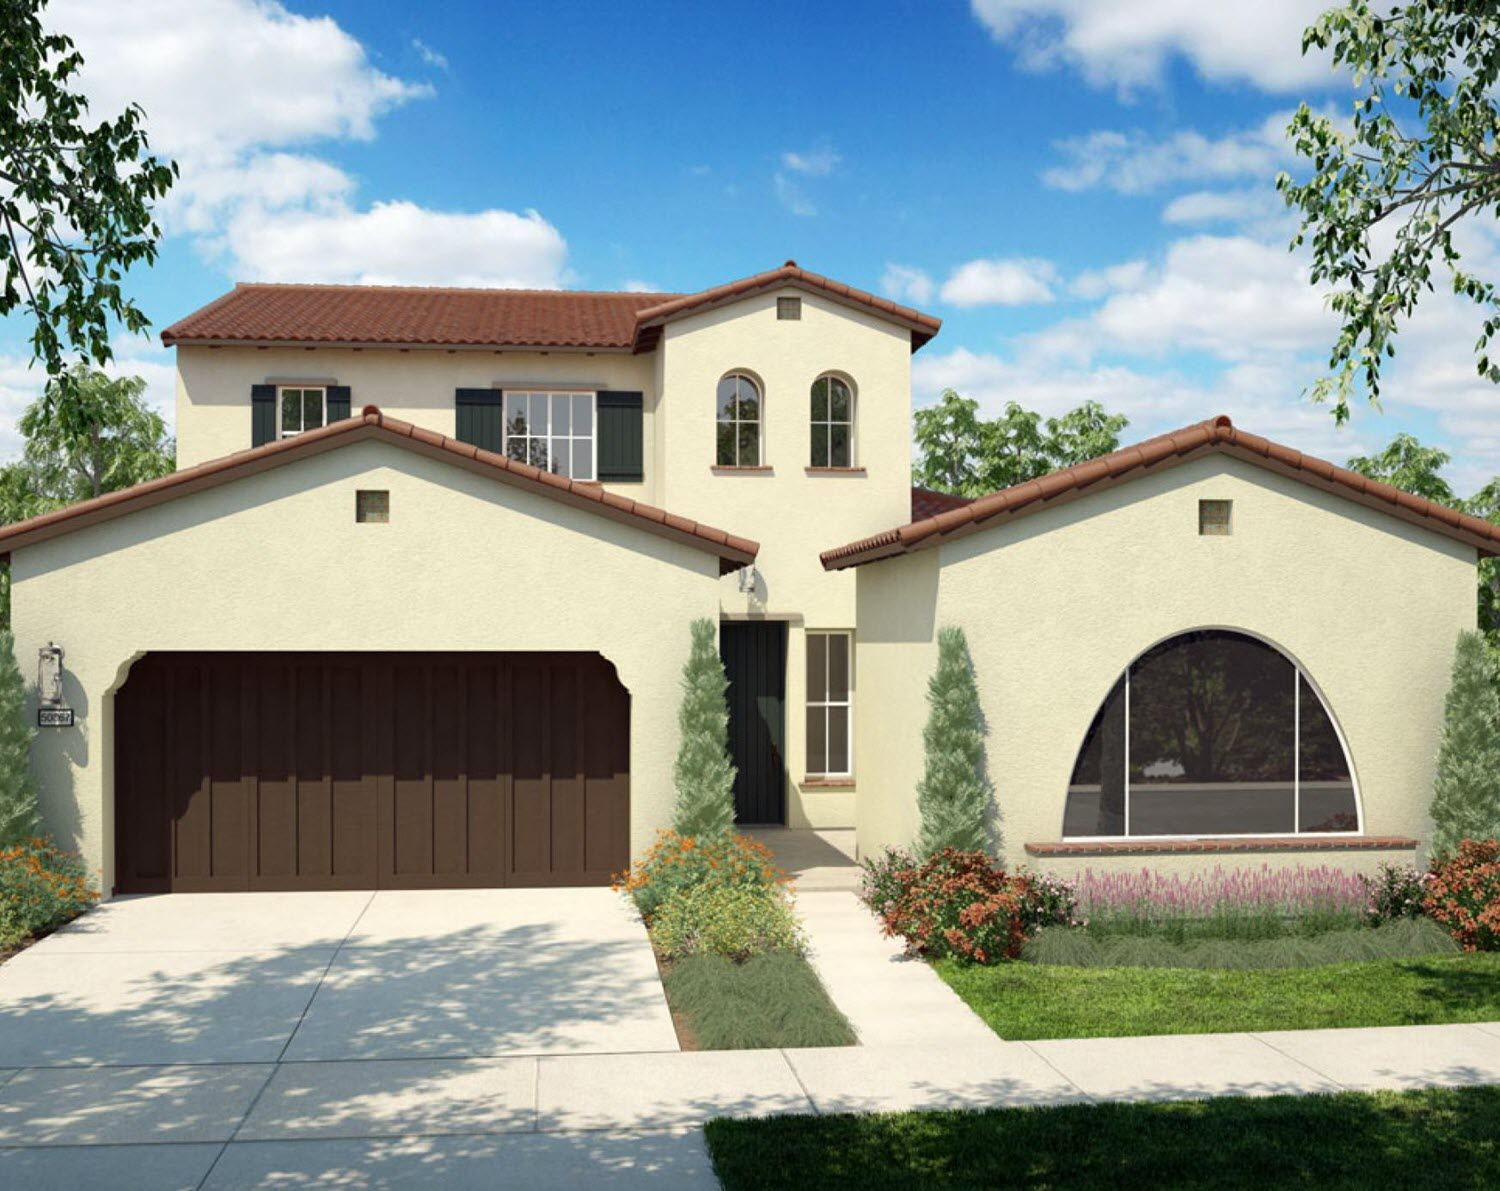 Single Family for Sale at Sage - The Cannery - Sage-The Cannery-Plan 2 1080 Pierce Lane Davis, California 95616 United States